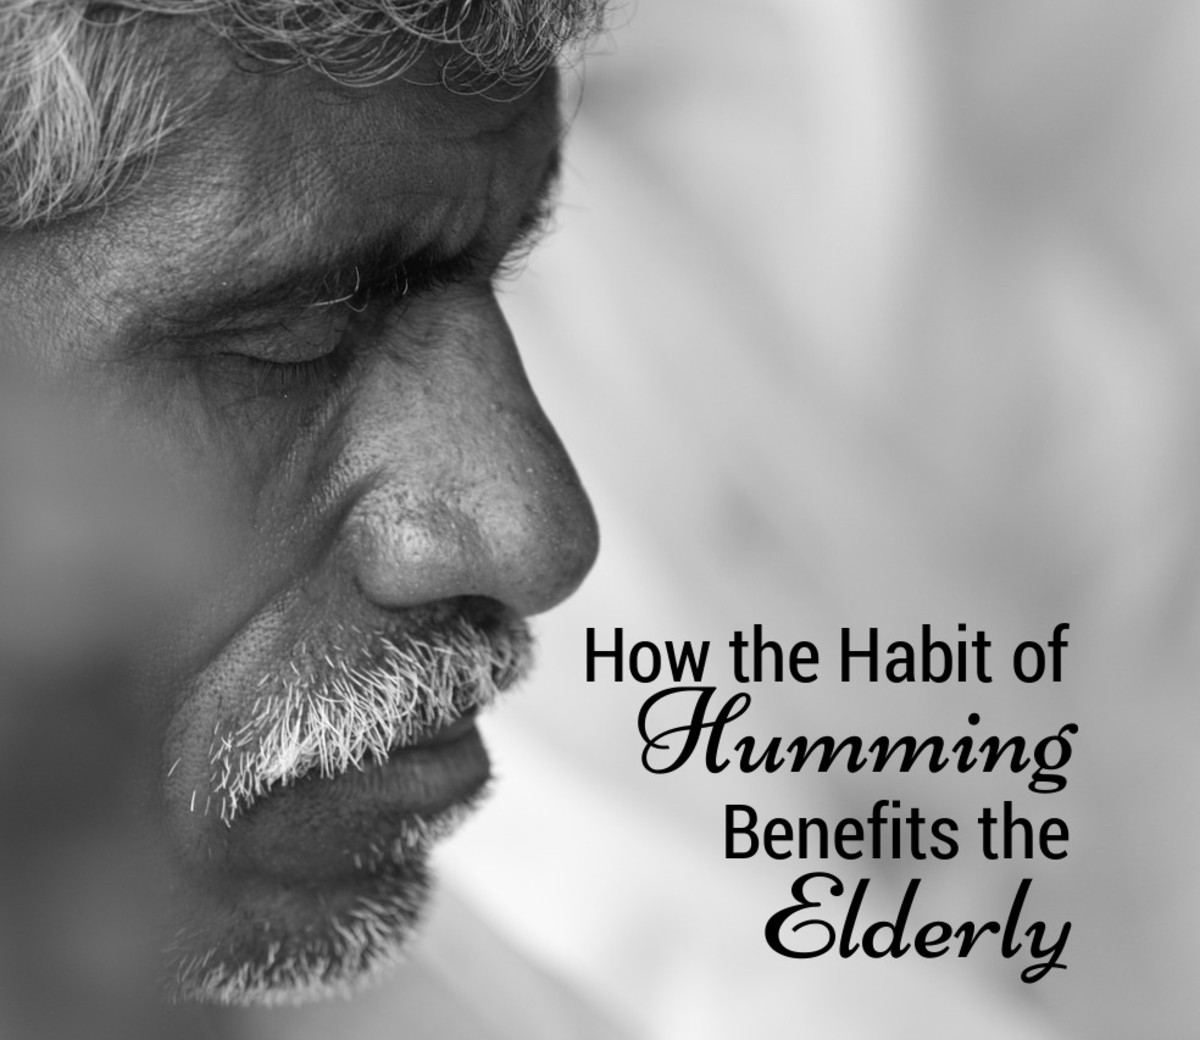 How the Habit of Humming Benefits the Elderly